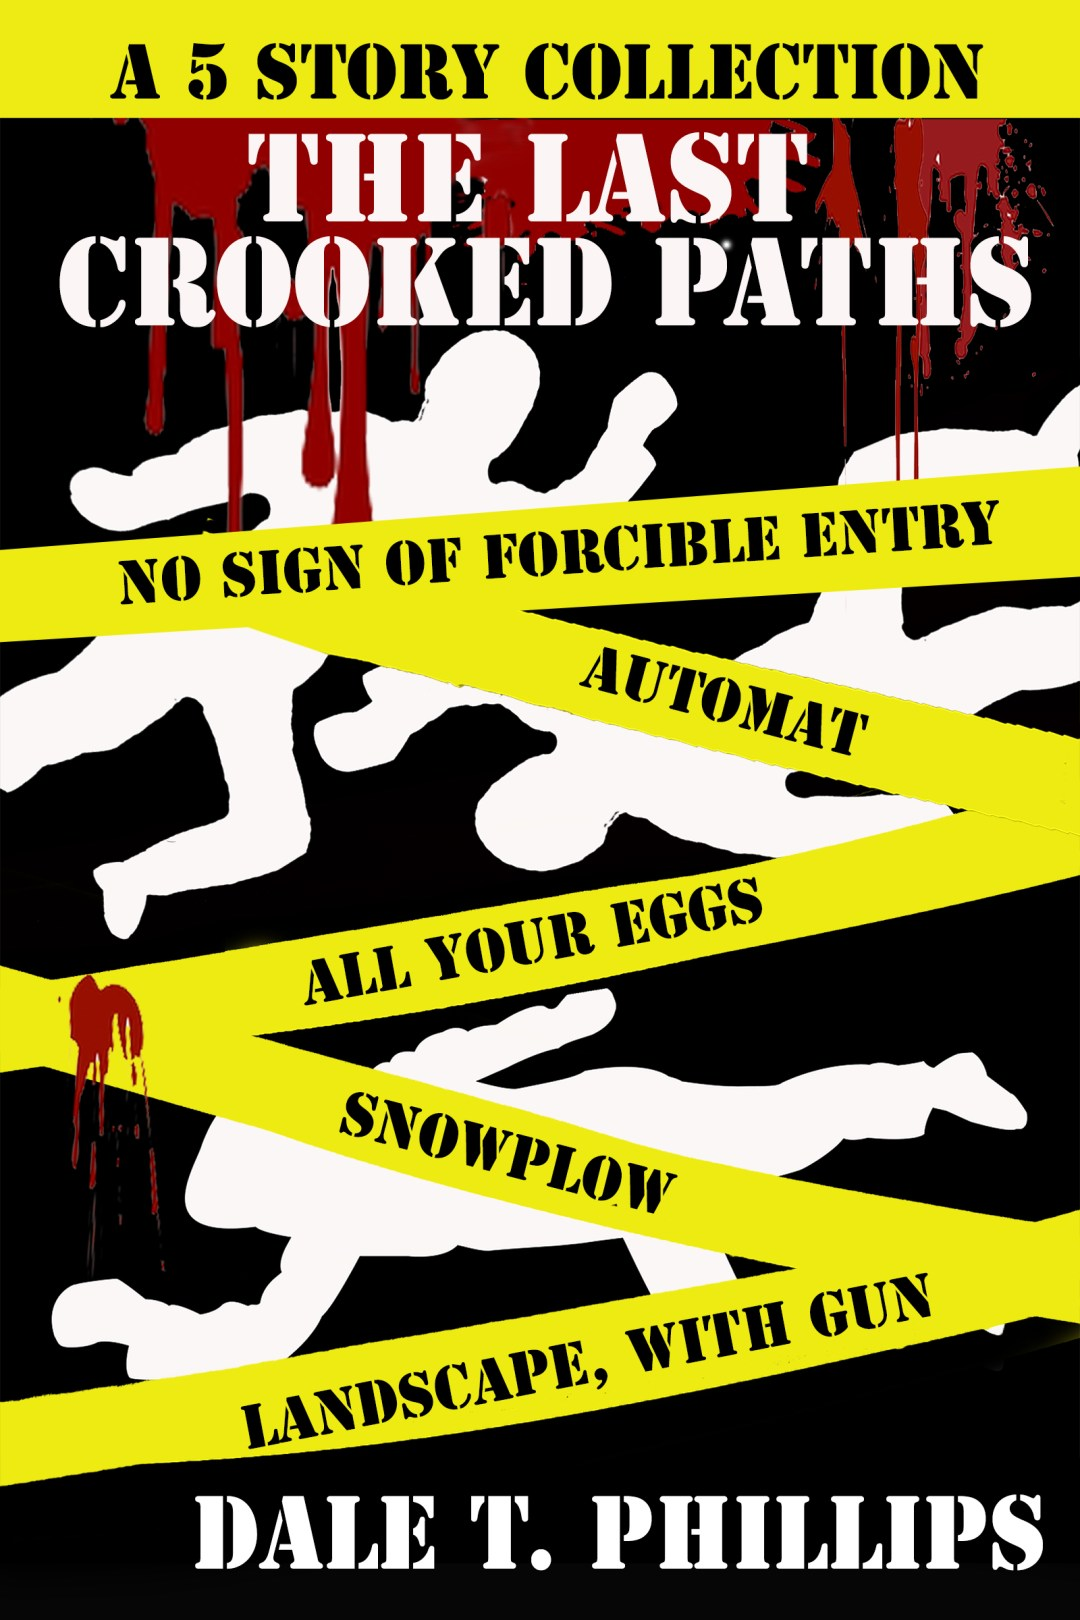 The Last Crooked Paths - tales of crime and mystery by Dale Phillips